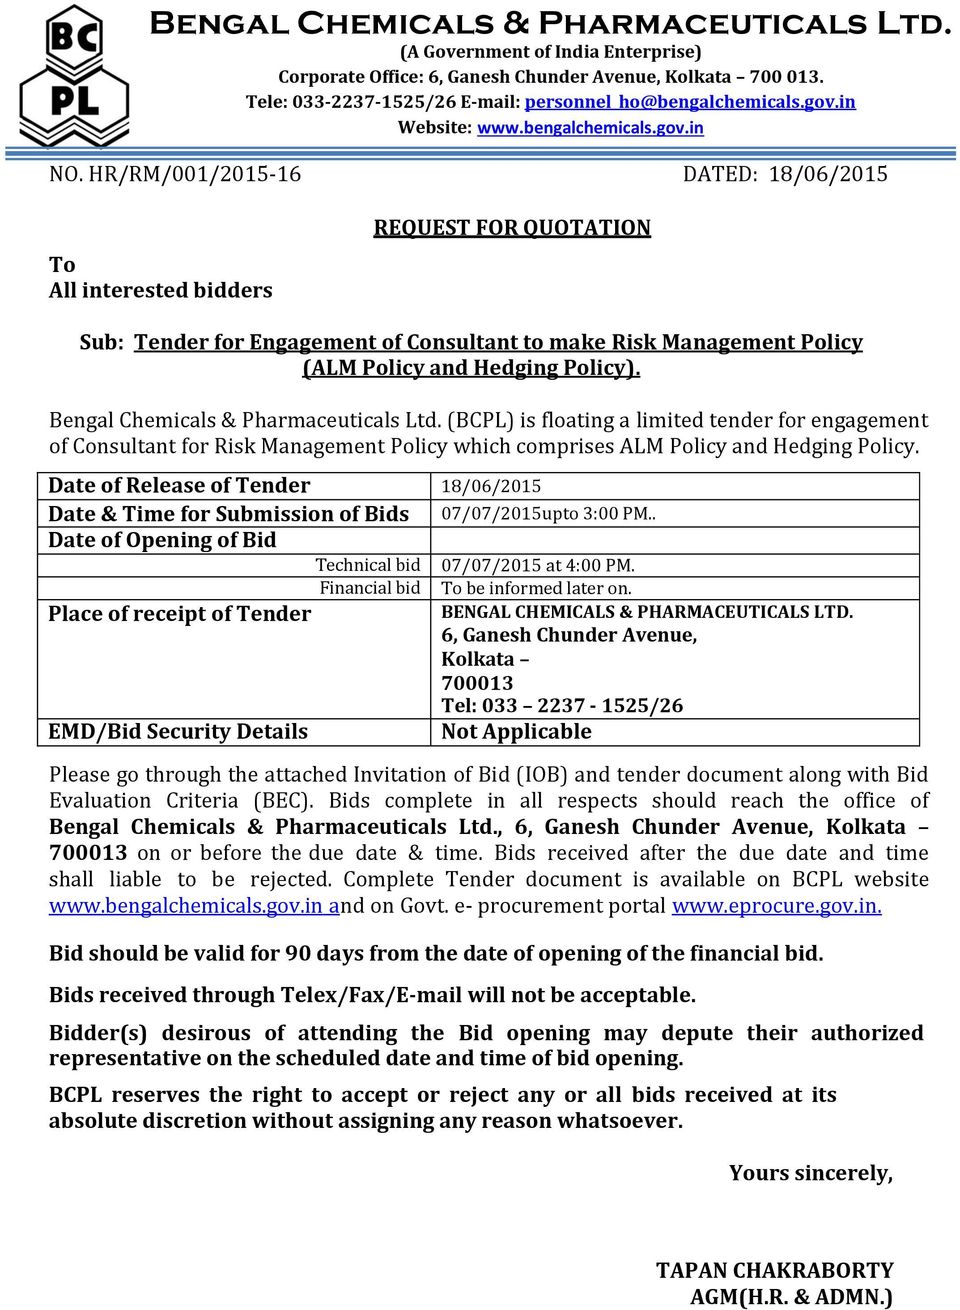 HR/RM/001/2015-16 DATED: 18/06/2015 To All interested bidders REQUEST FOR QUOTATION Sub: Tender for Engagement of Consultant to make Risk Management Policy (ALM Policy and Hedging Policy).